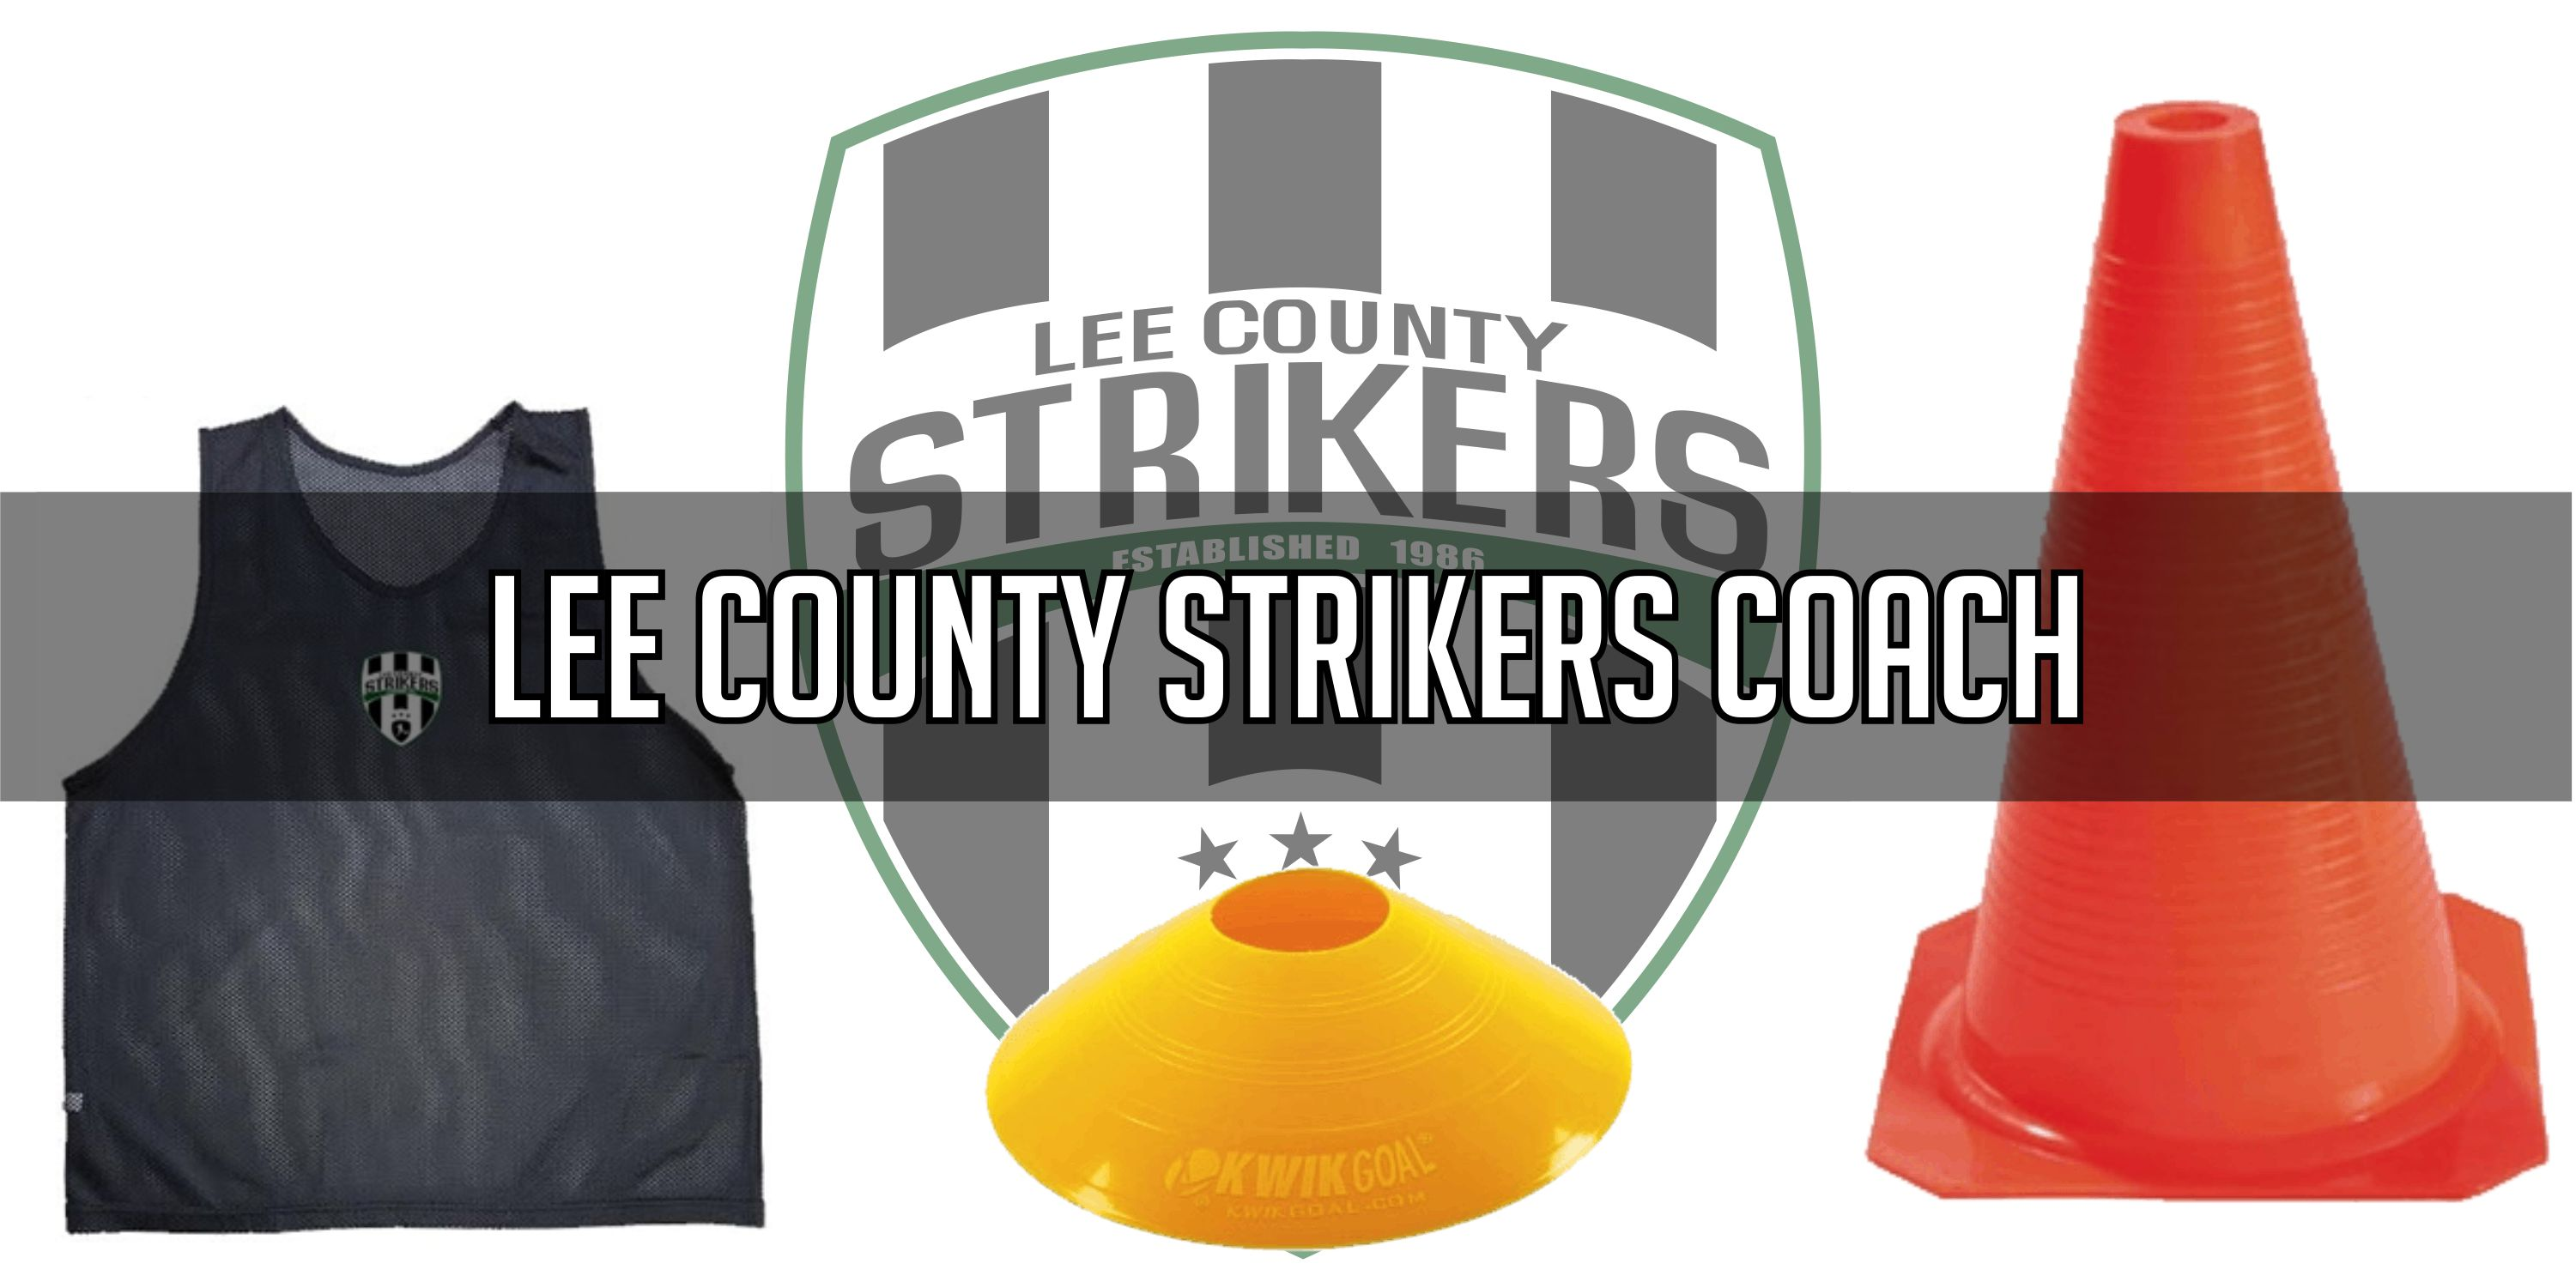 Lee County Strikers Coach